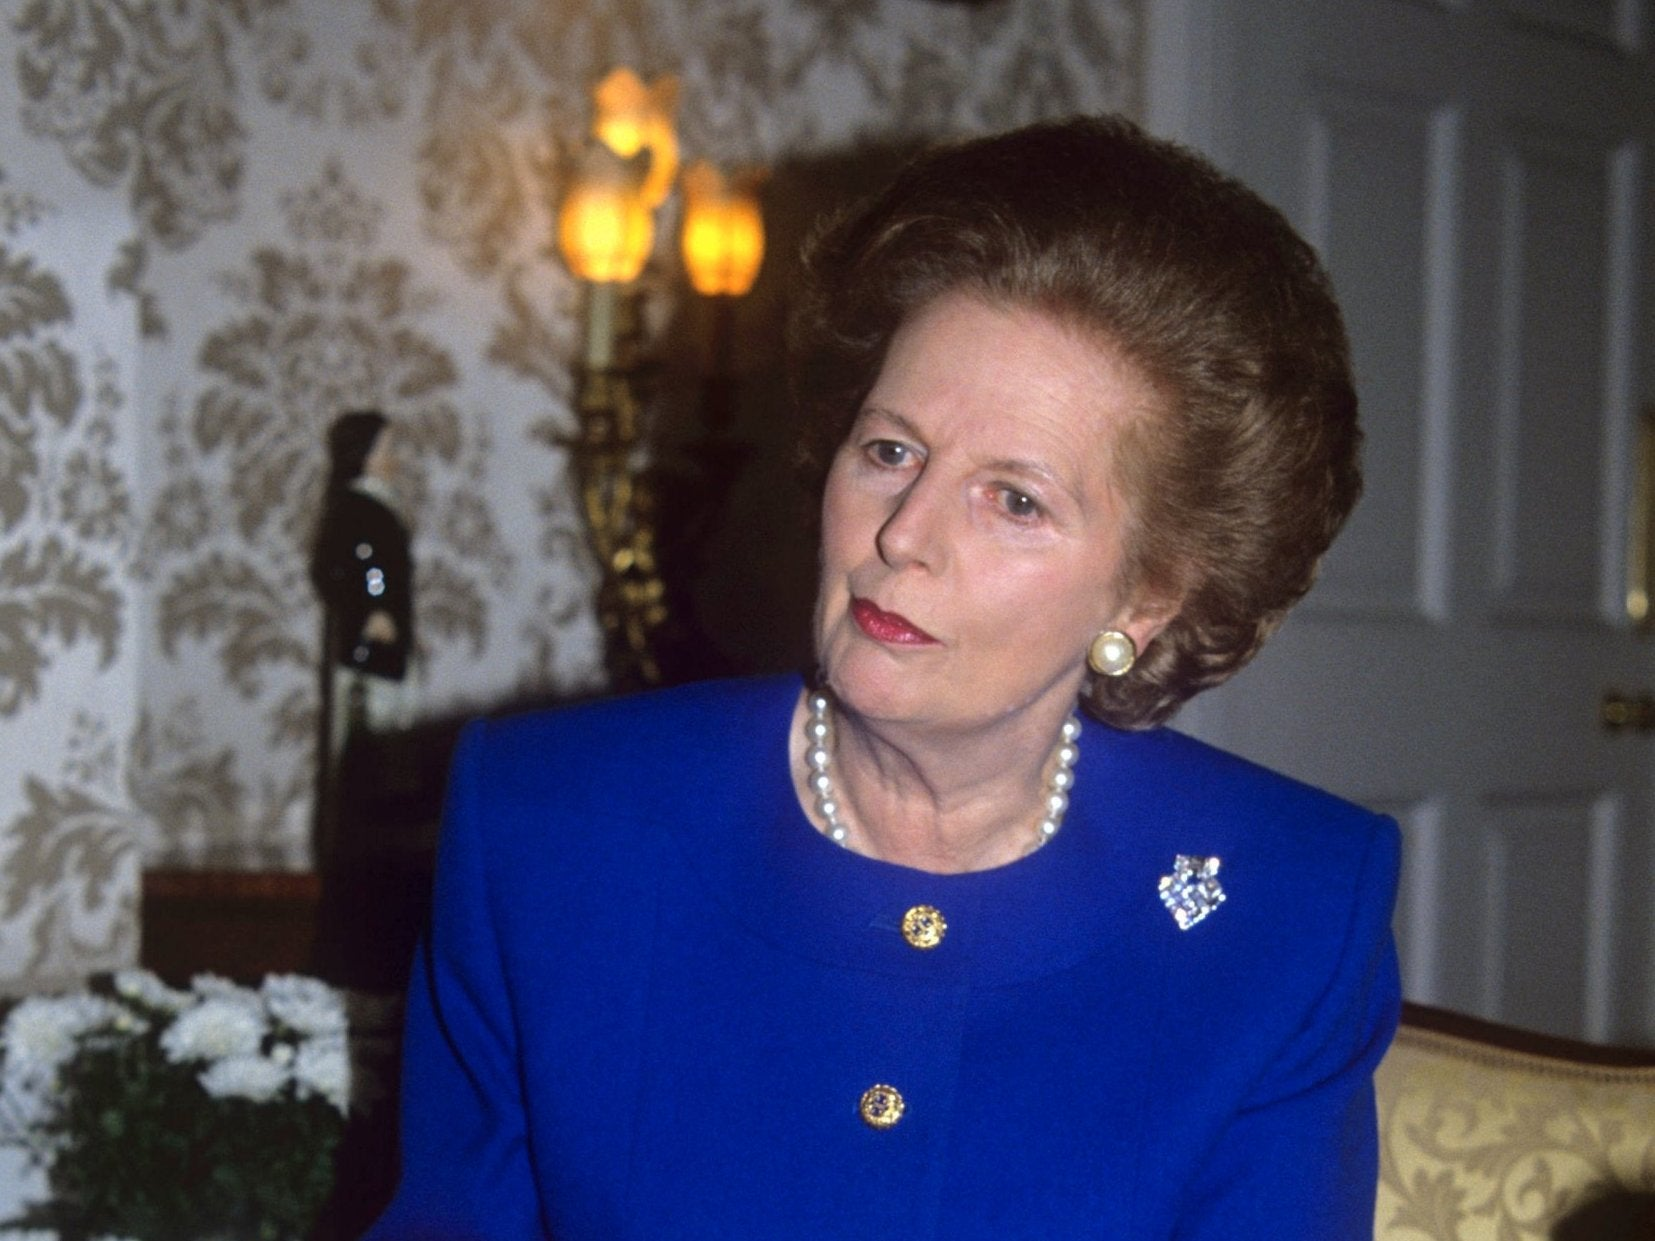 Margaret Thatcher used alternative health therapies, documents reveal